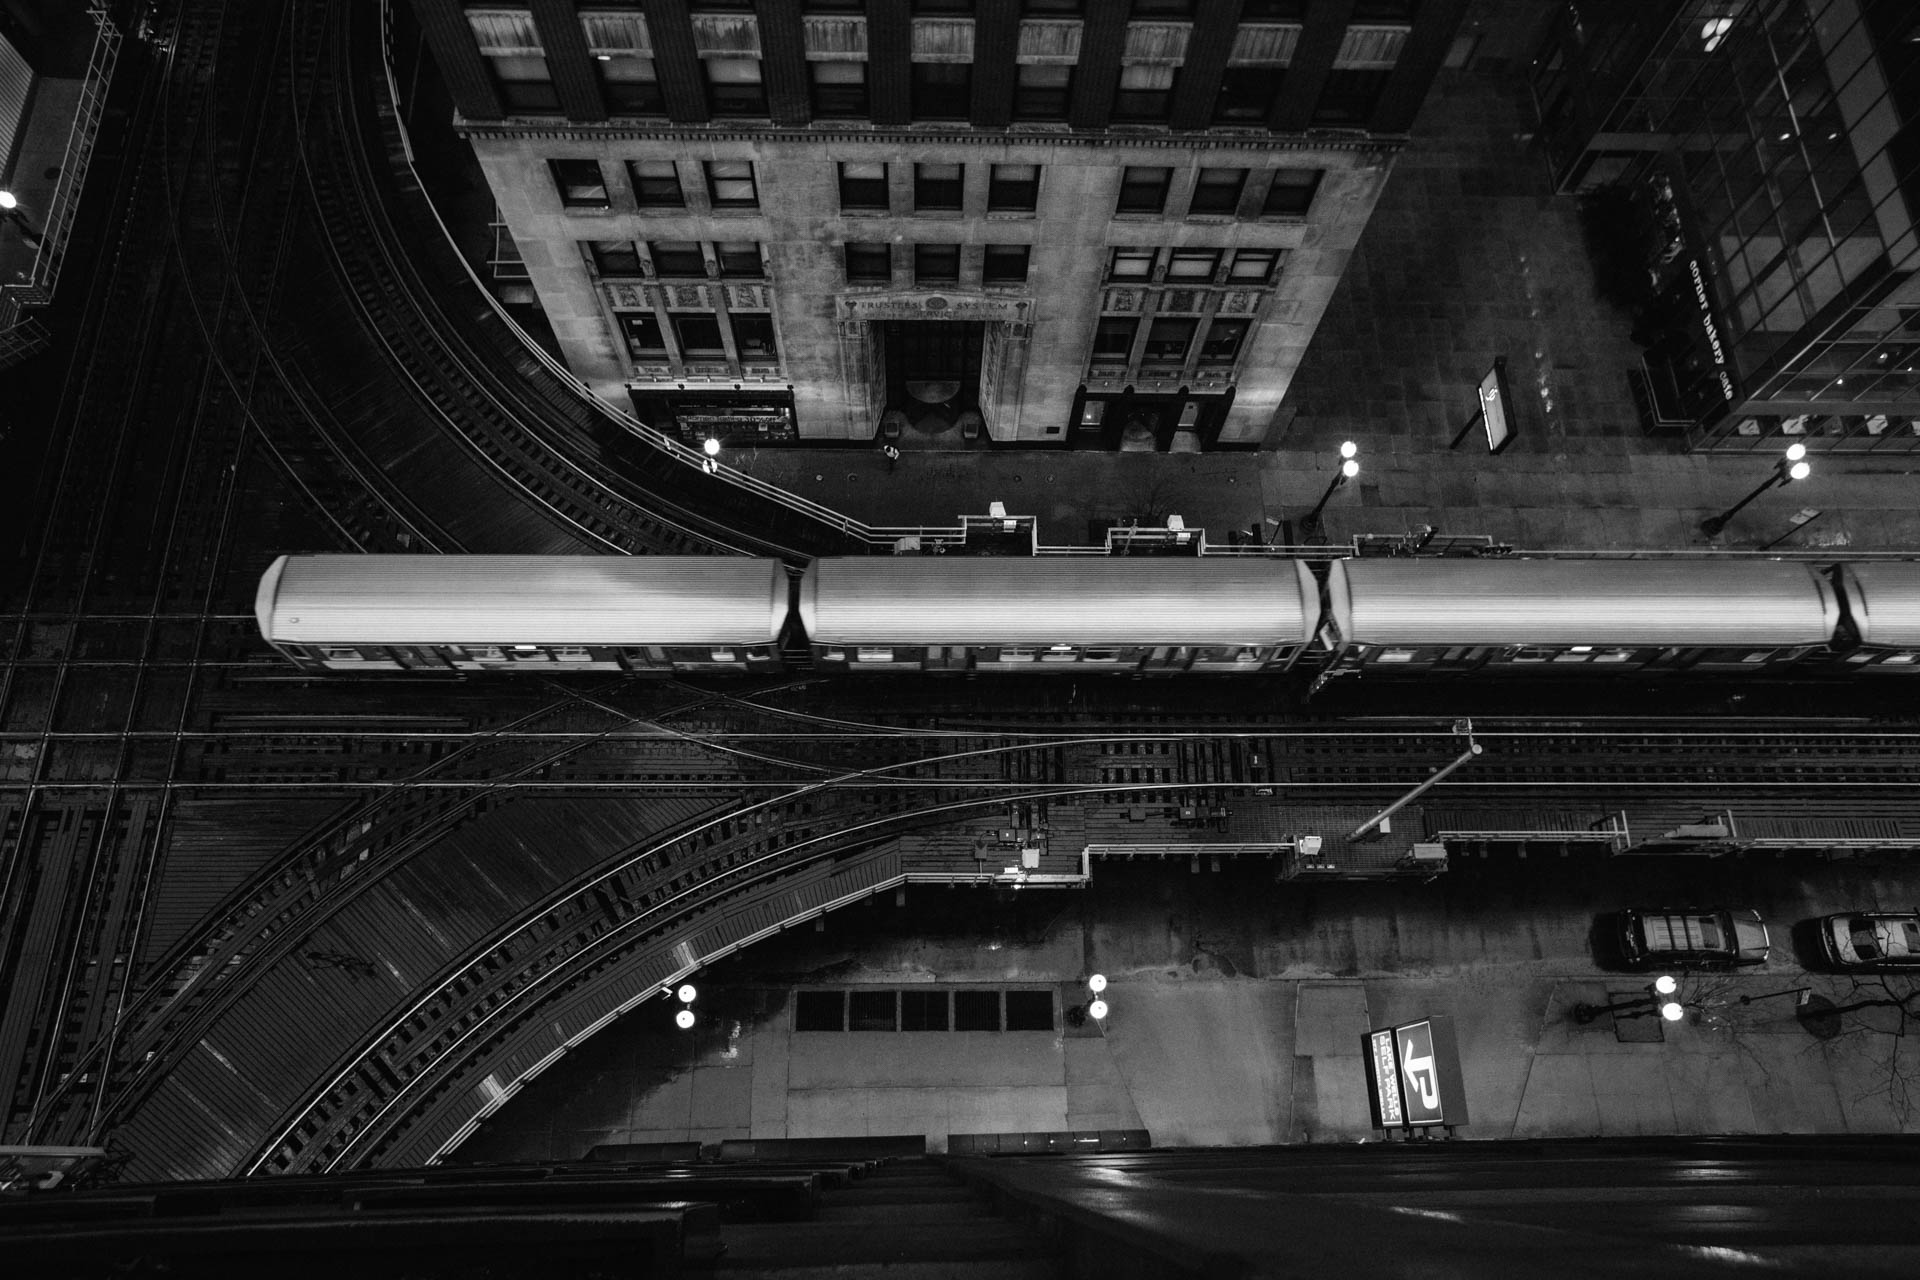 cta_tower_18_looking_down_5526untitled